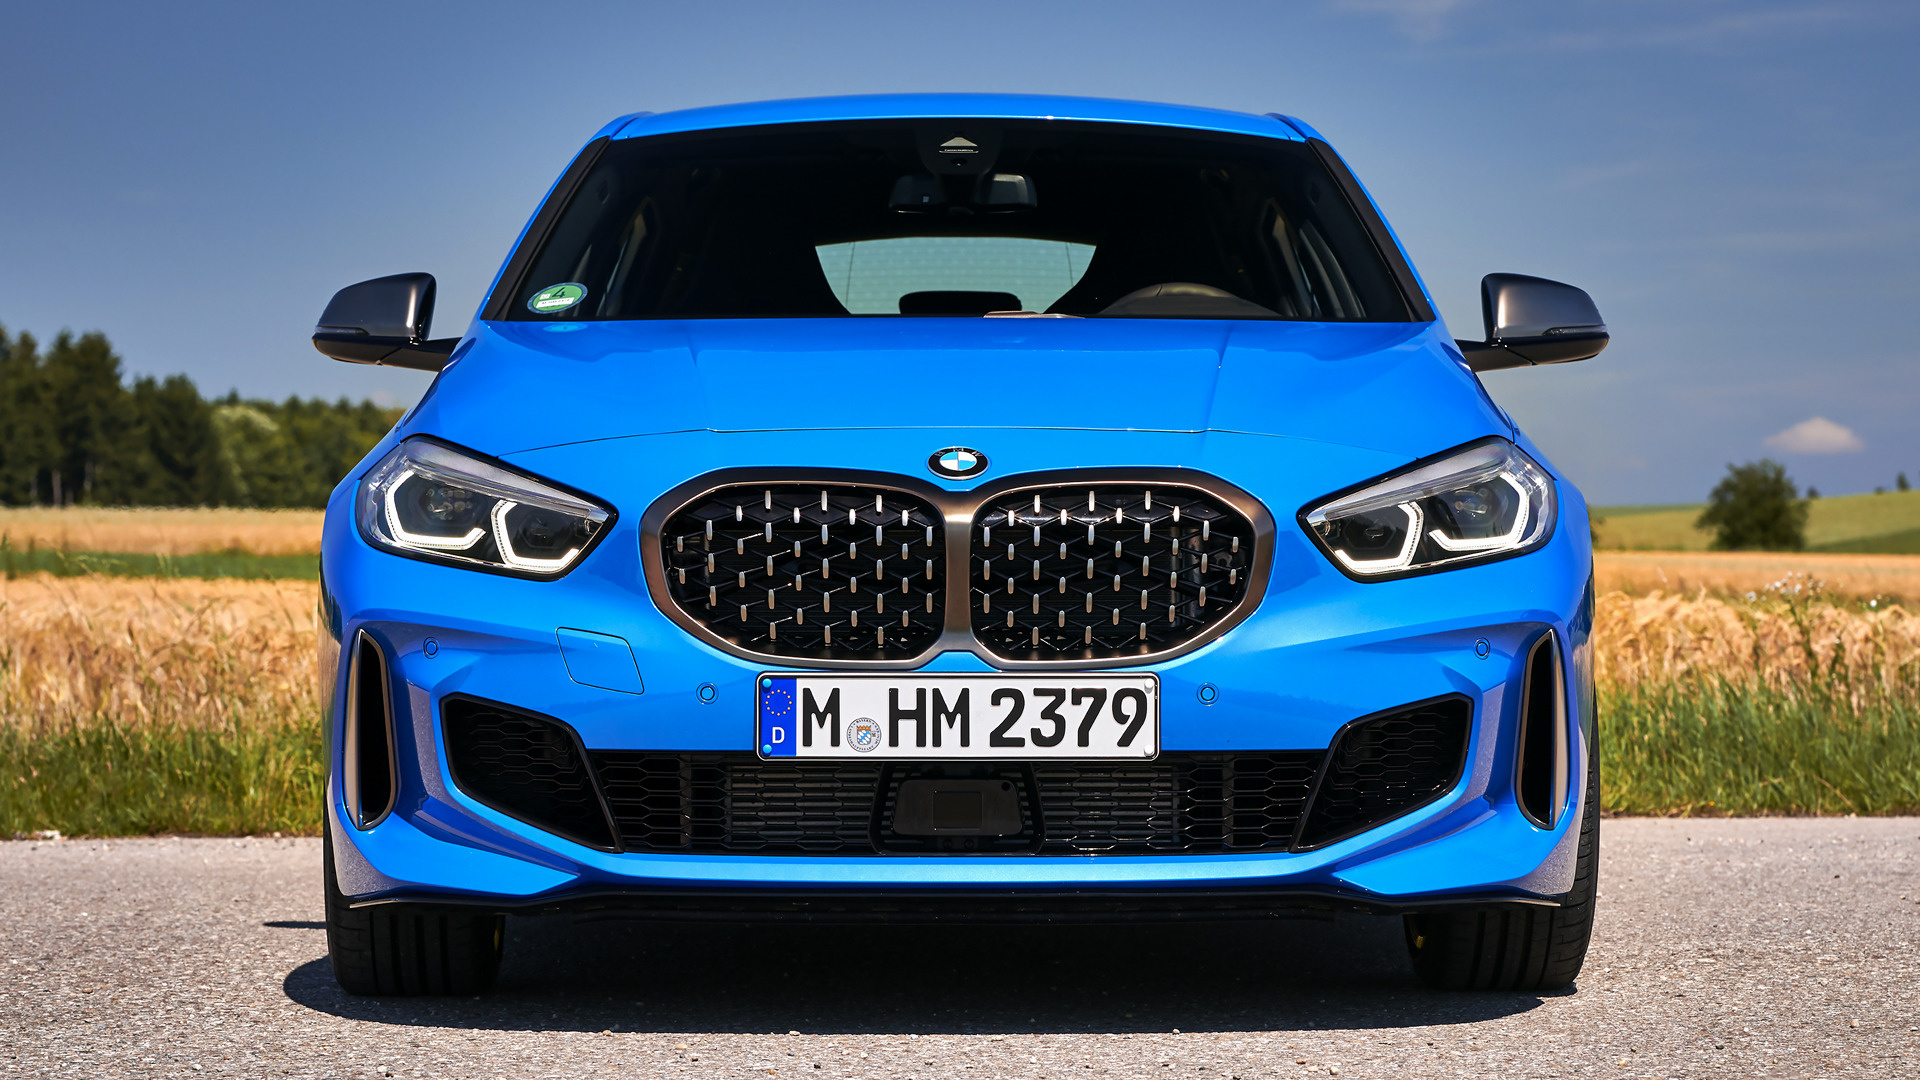 2020 BMW M135i Wallpapers   SuperCars.net